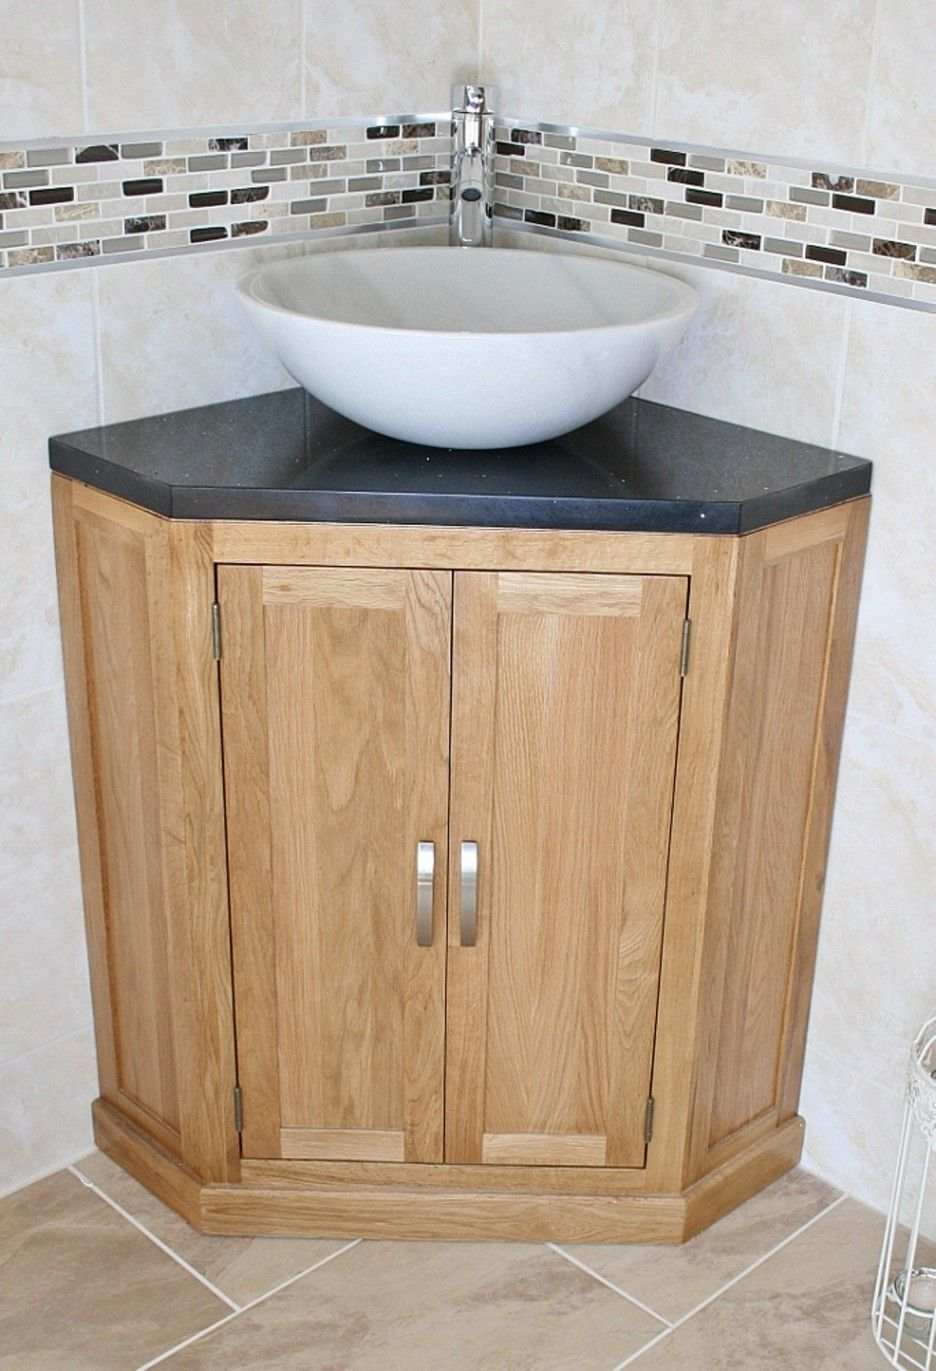 Corner Unfinished Wooden Vanity Mixed White Porcelain Vessel Sink Bathroom Inspiring Diy B Small Bathroom Vanities Diy Bathroom Vanity Corner Bathroom Vanity